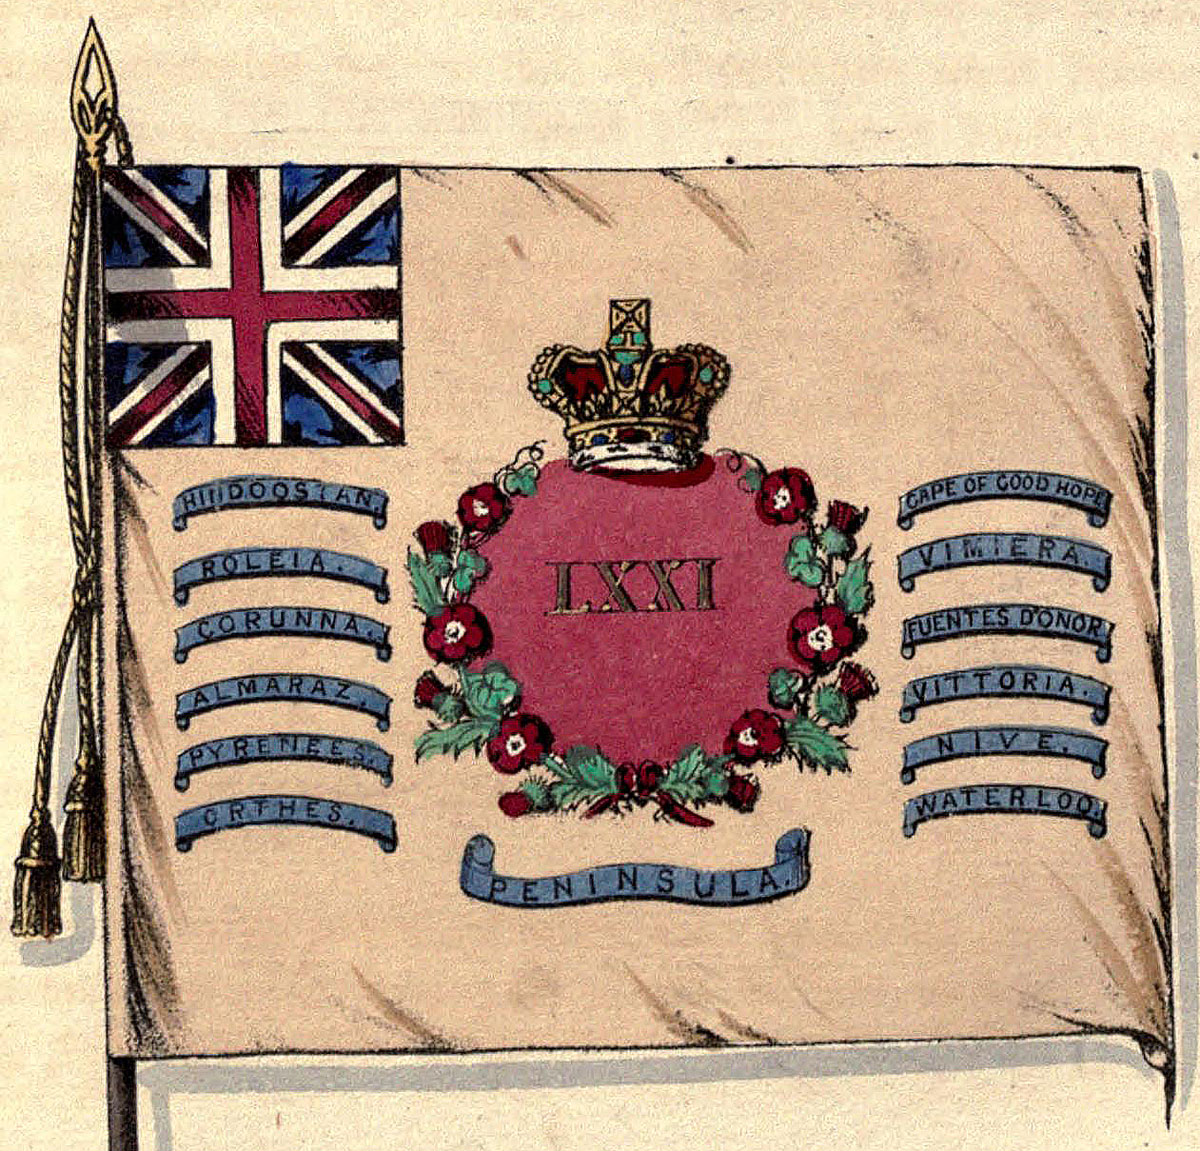 Regimental Colour of the 71st Highland Light Infantry showing the Battle Honour of the Battle of Fuentes de Oñoro 3rd to 5th May 1811 in the Peninsular War